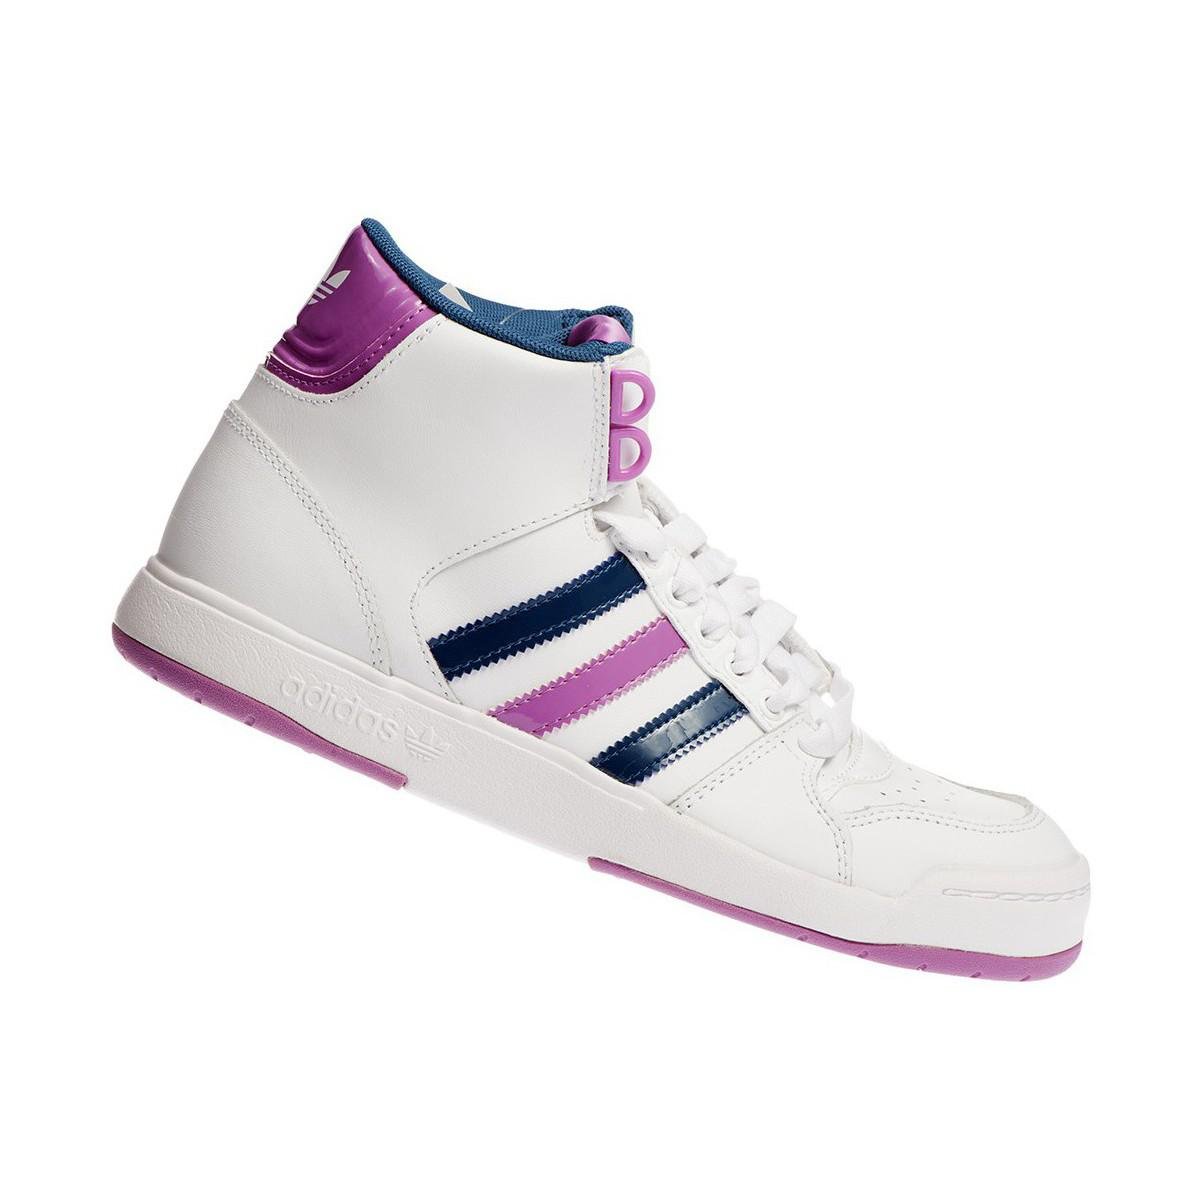 quality design a1b92 a3477 adidas Midiru Court Mid 20 W Womens Shoes (high-top Trainers